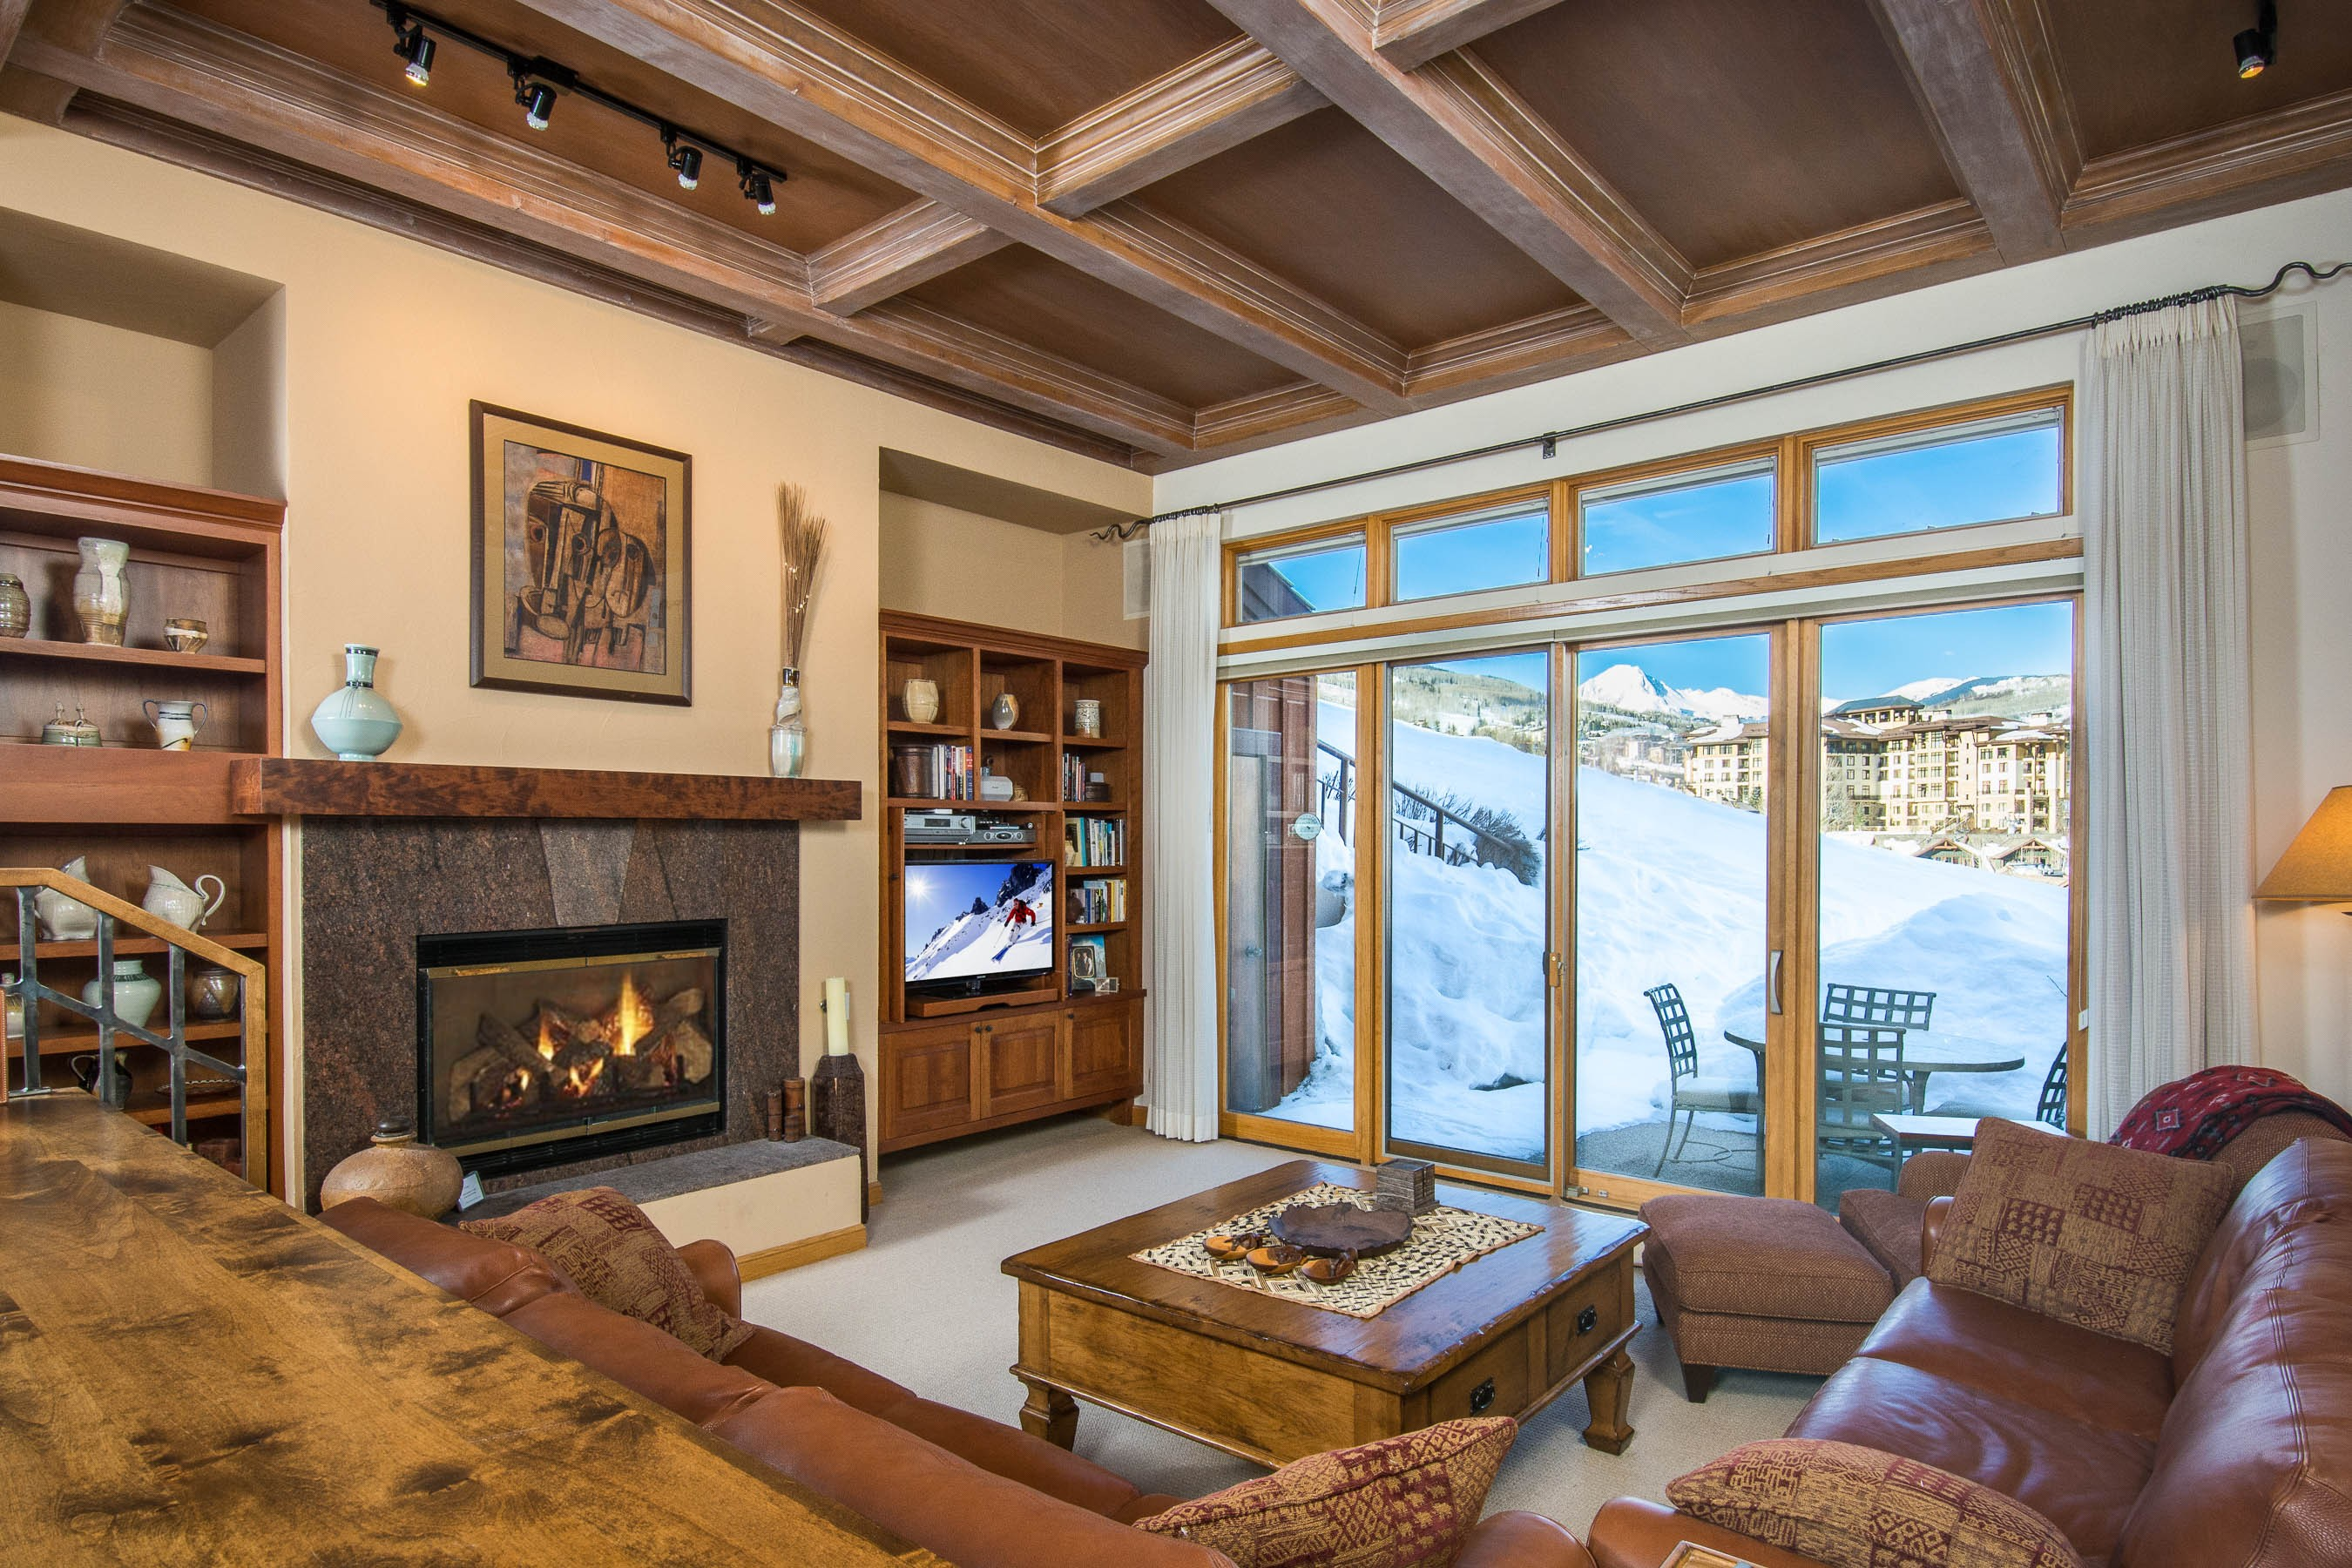 Condominium for Sale at Spacious 3 Bedroom Ski Retreat 770 Ridge Road, Unit 5 Snowmass Village, Colorado, 81615 United States